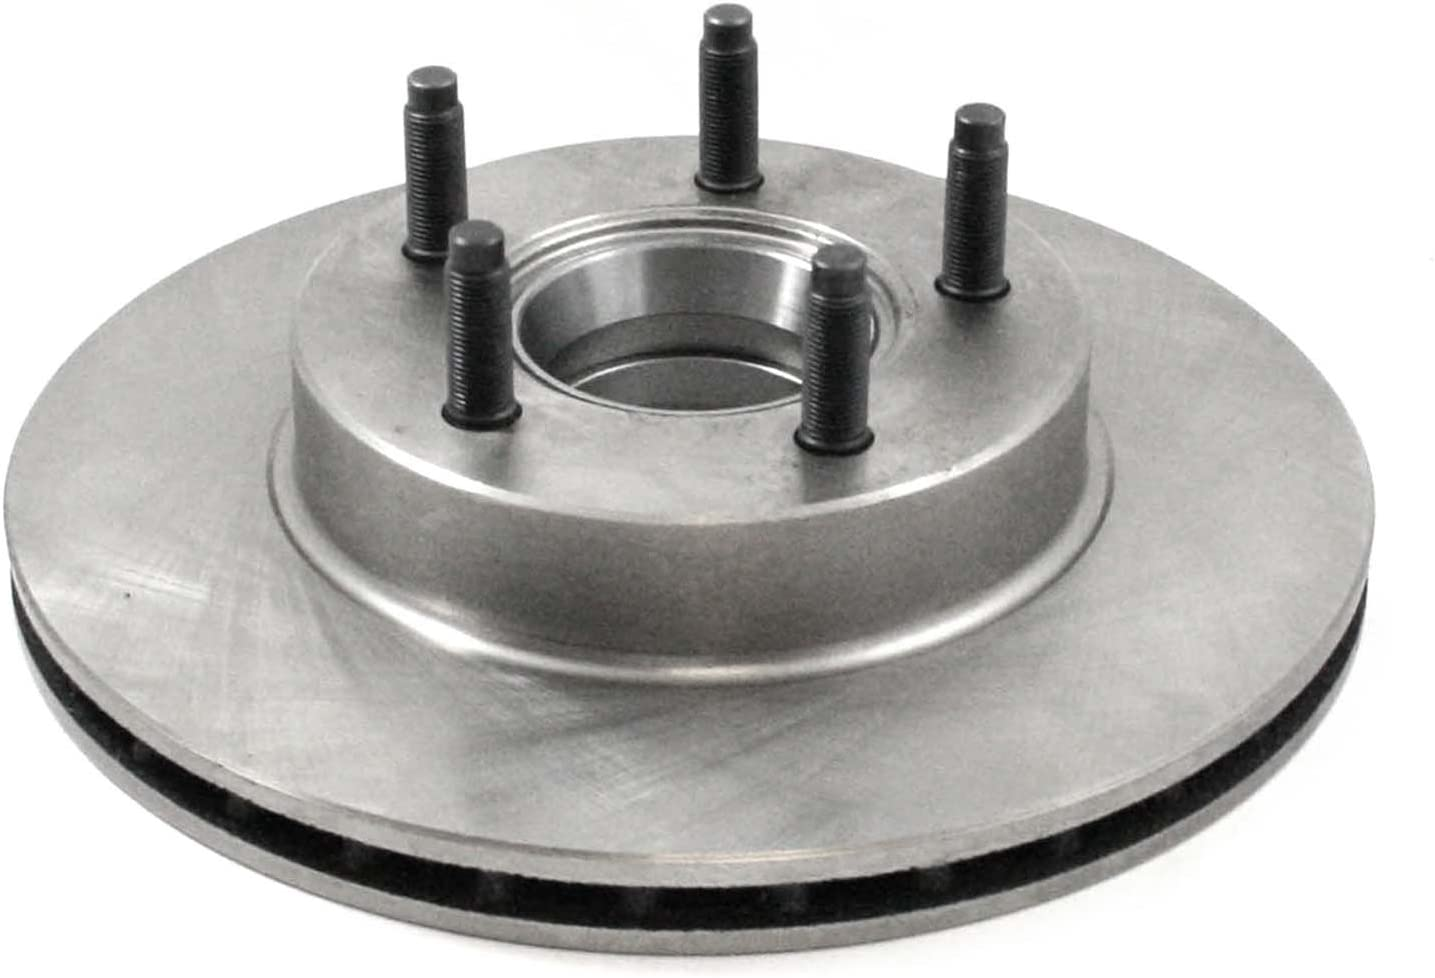 DuraGo BR5448 Front Vented Brake Rotor Disc Popular products Cash special price